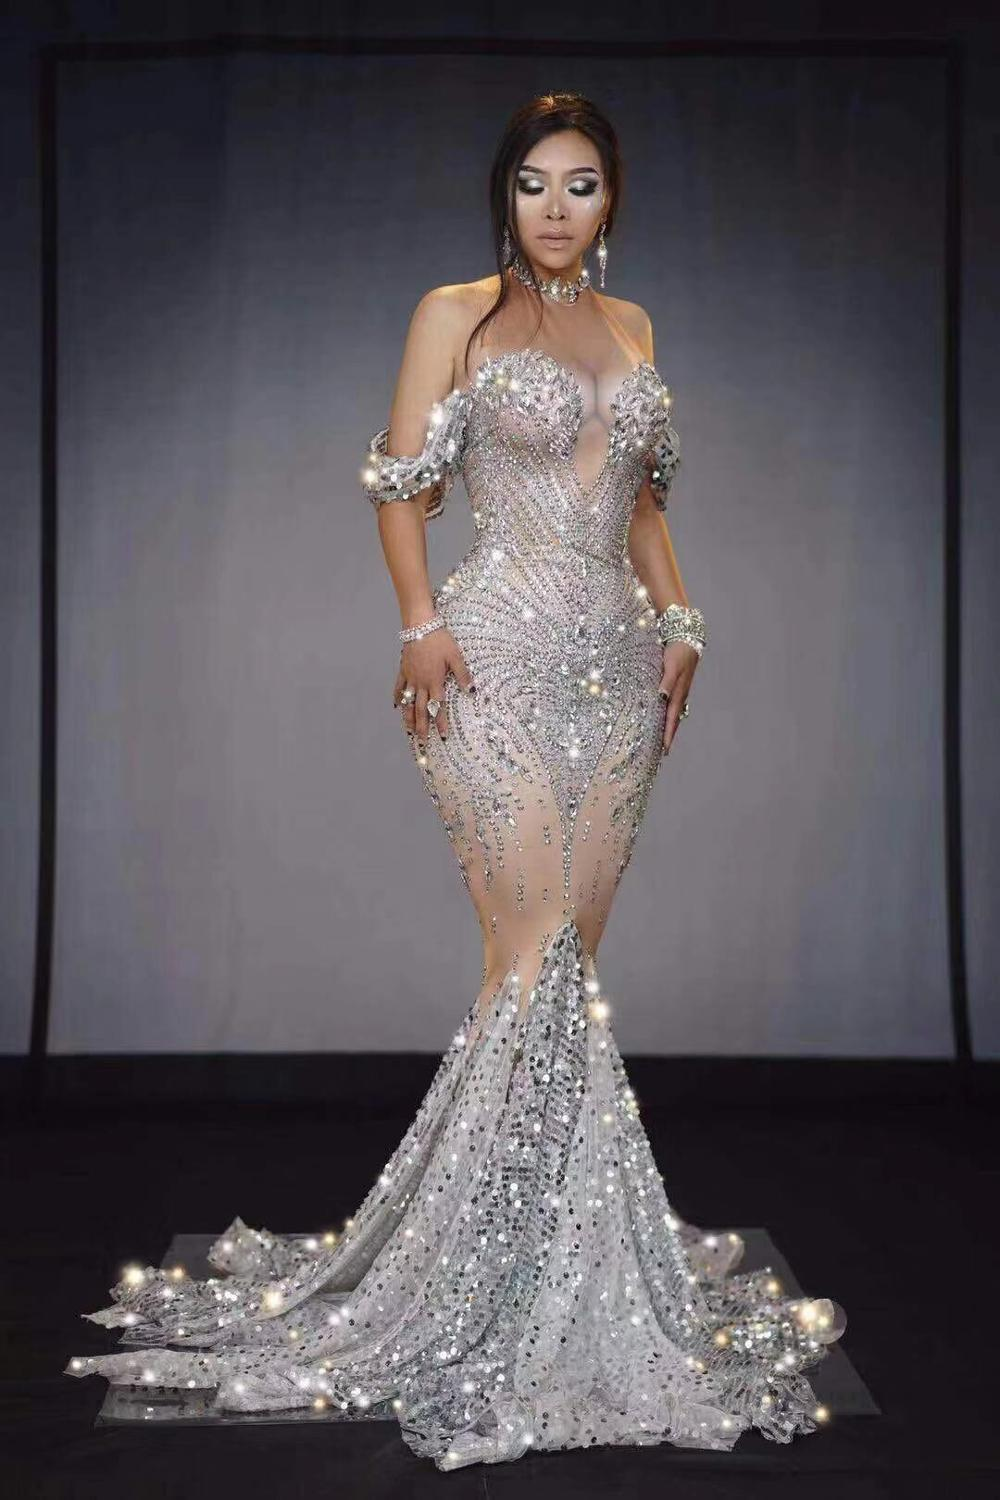 High Quality Celebrity Shining Beading Trumpet Long <font><b>Dress</b></font> Bodycon <font><b>DJ</b></font> Club Party Dancer Costume image